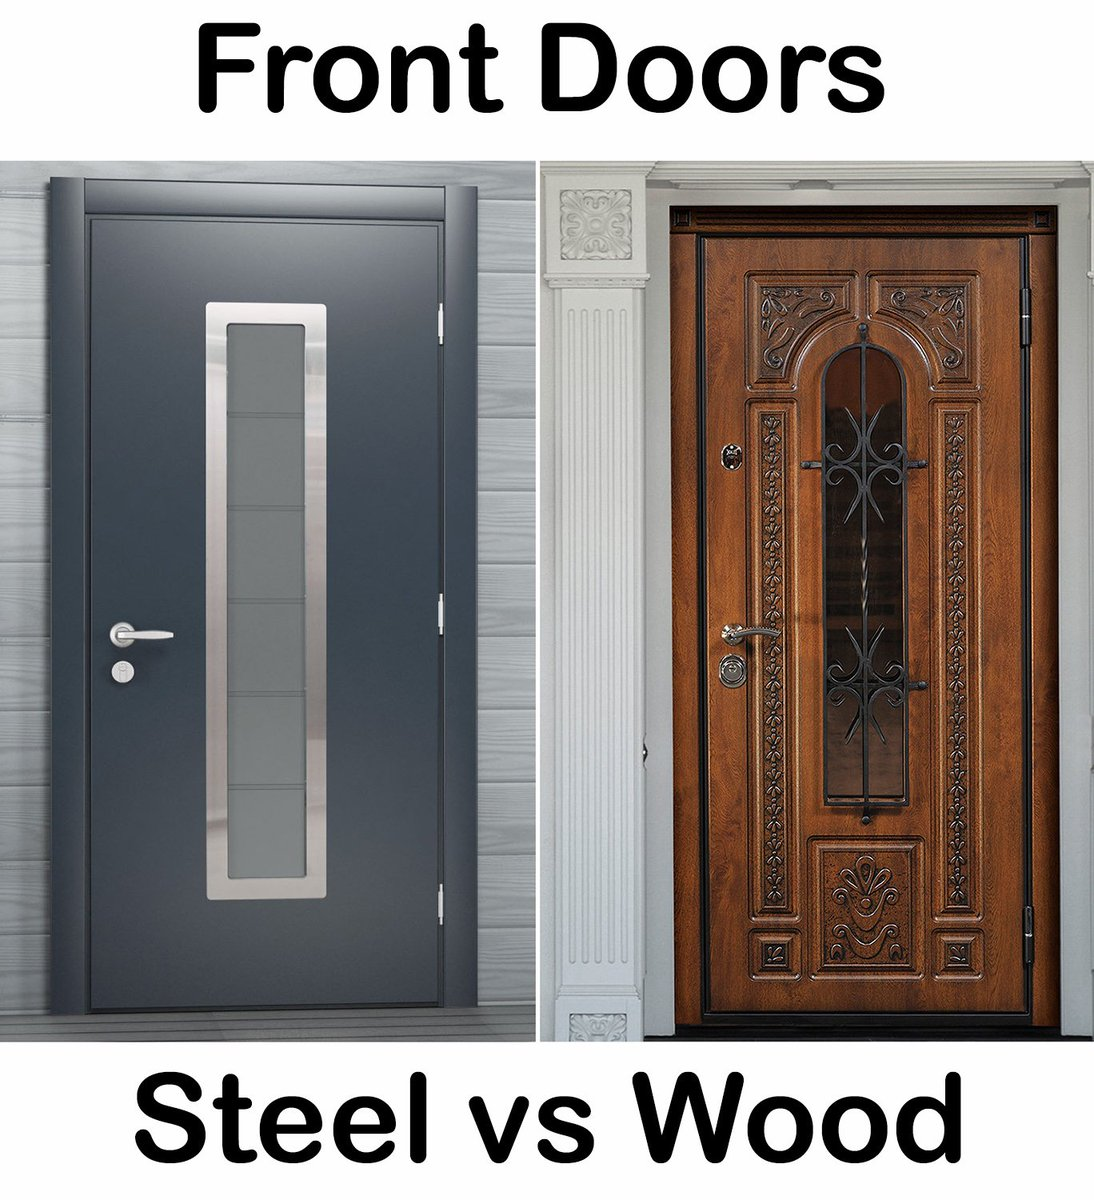 Thedoorsdepot On Twitter Wood Or Steel What Front Door